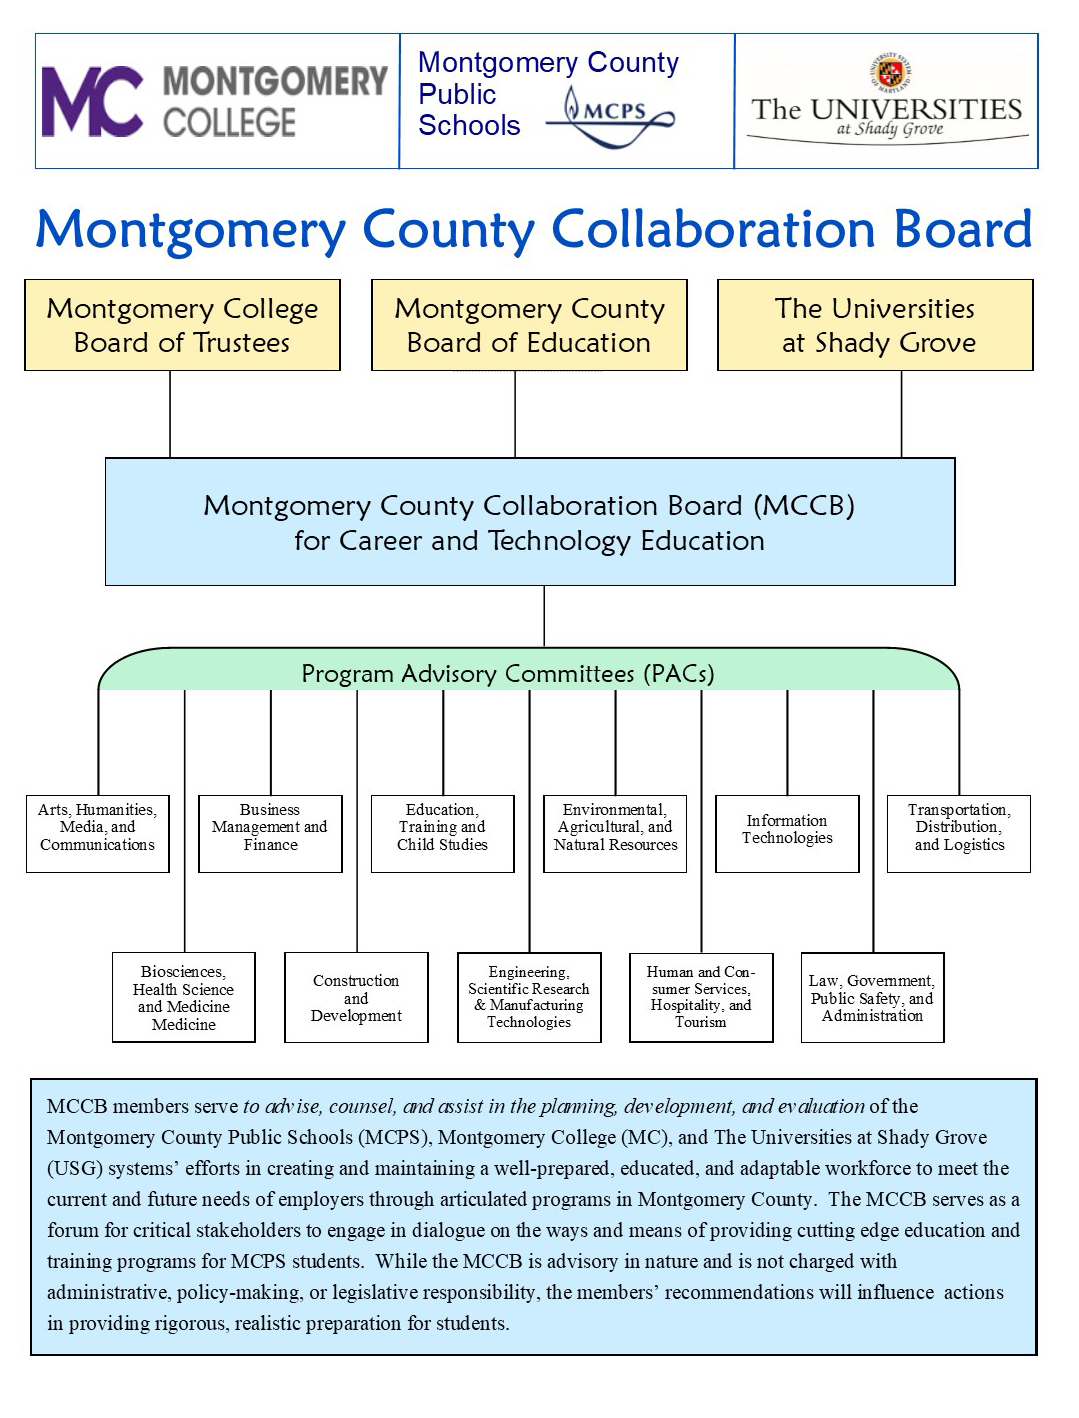 MCCB Org Chart 10_24_19_website graphic.jpg